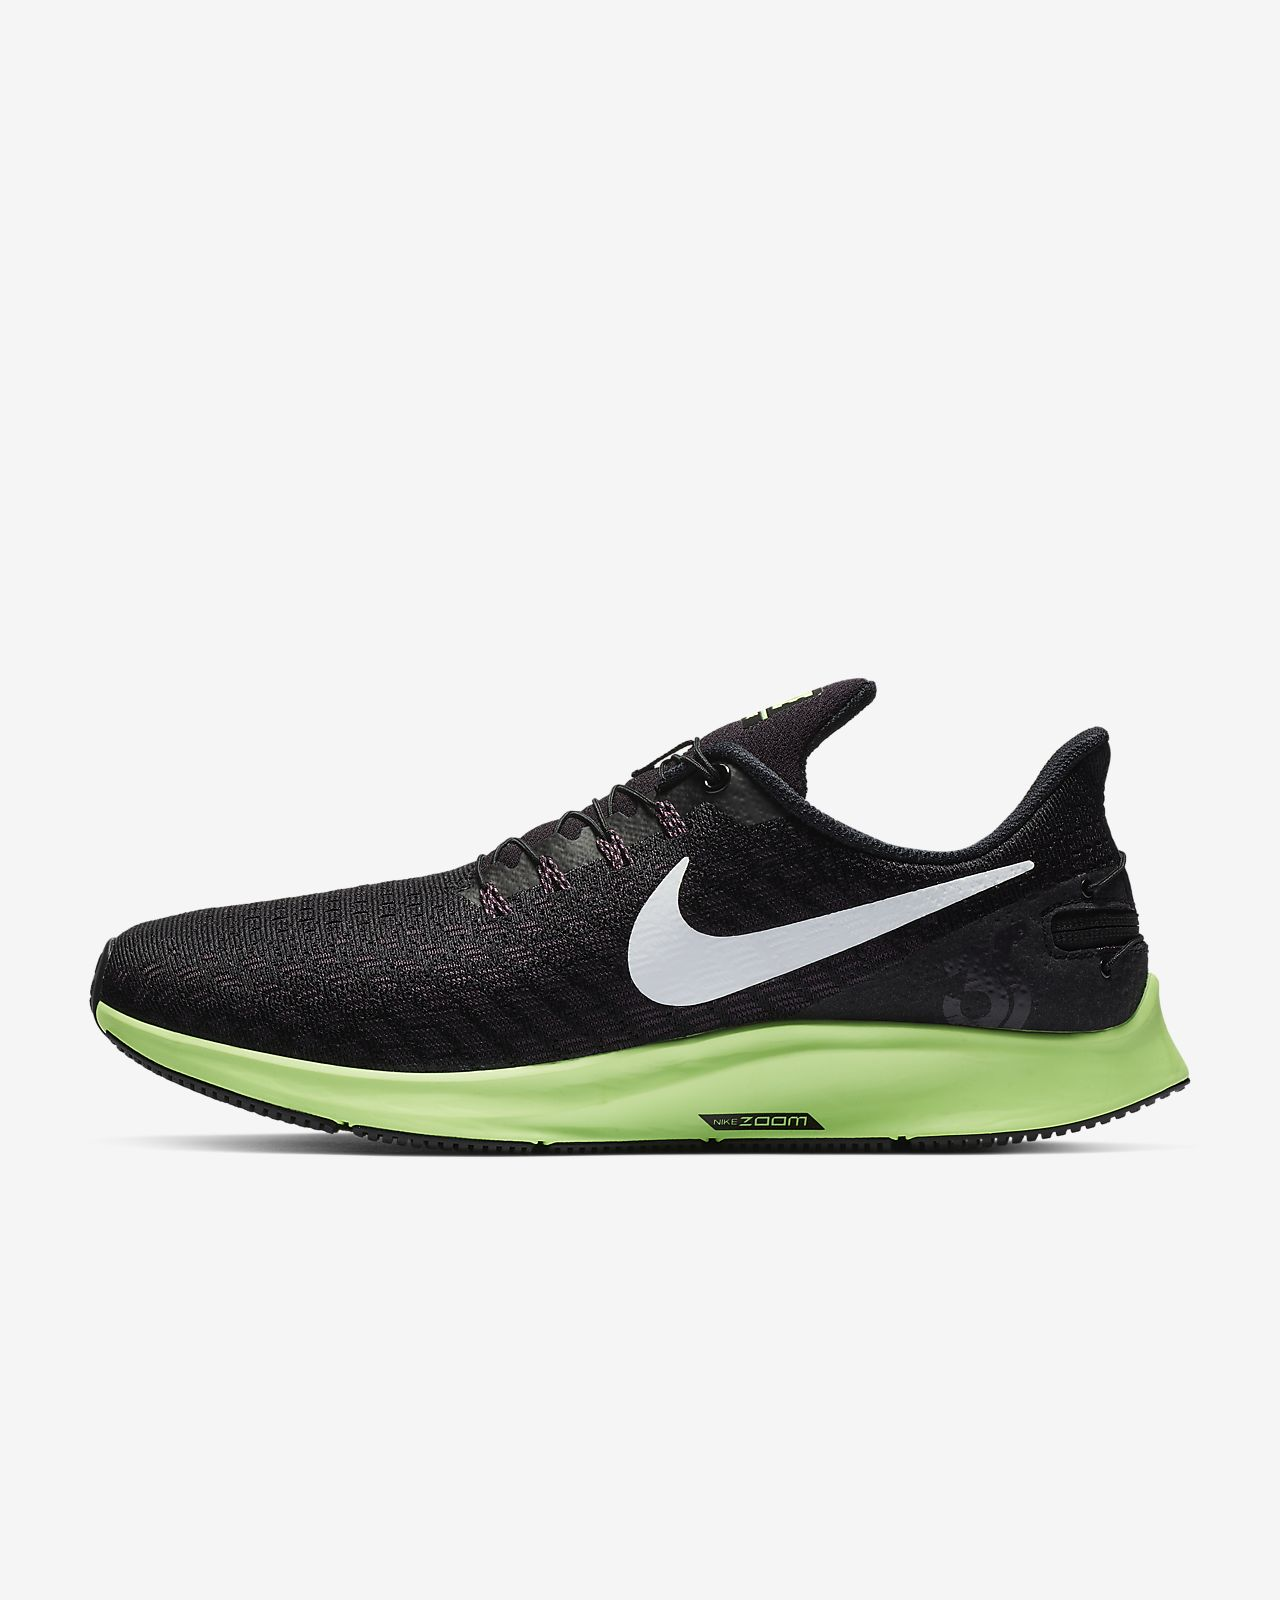 timeless design 1f35b 1dfe7 ... Chaussure de running Nike Air Zoom Pegasus 35 FlyEase pour Homme